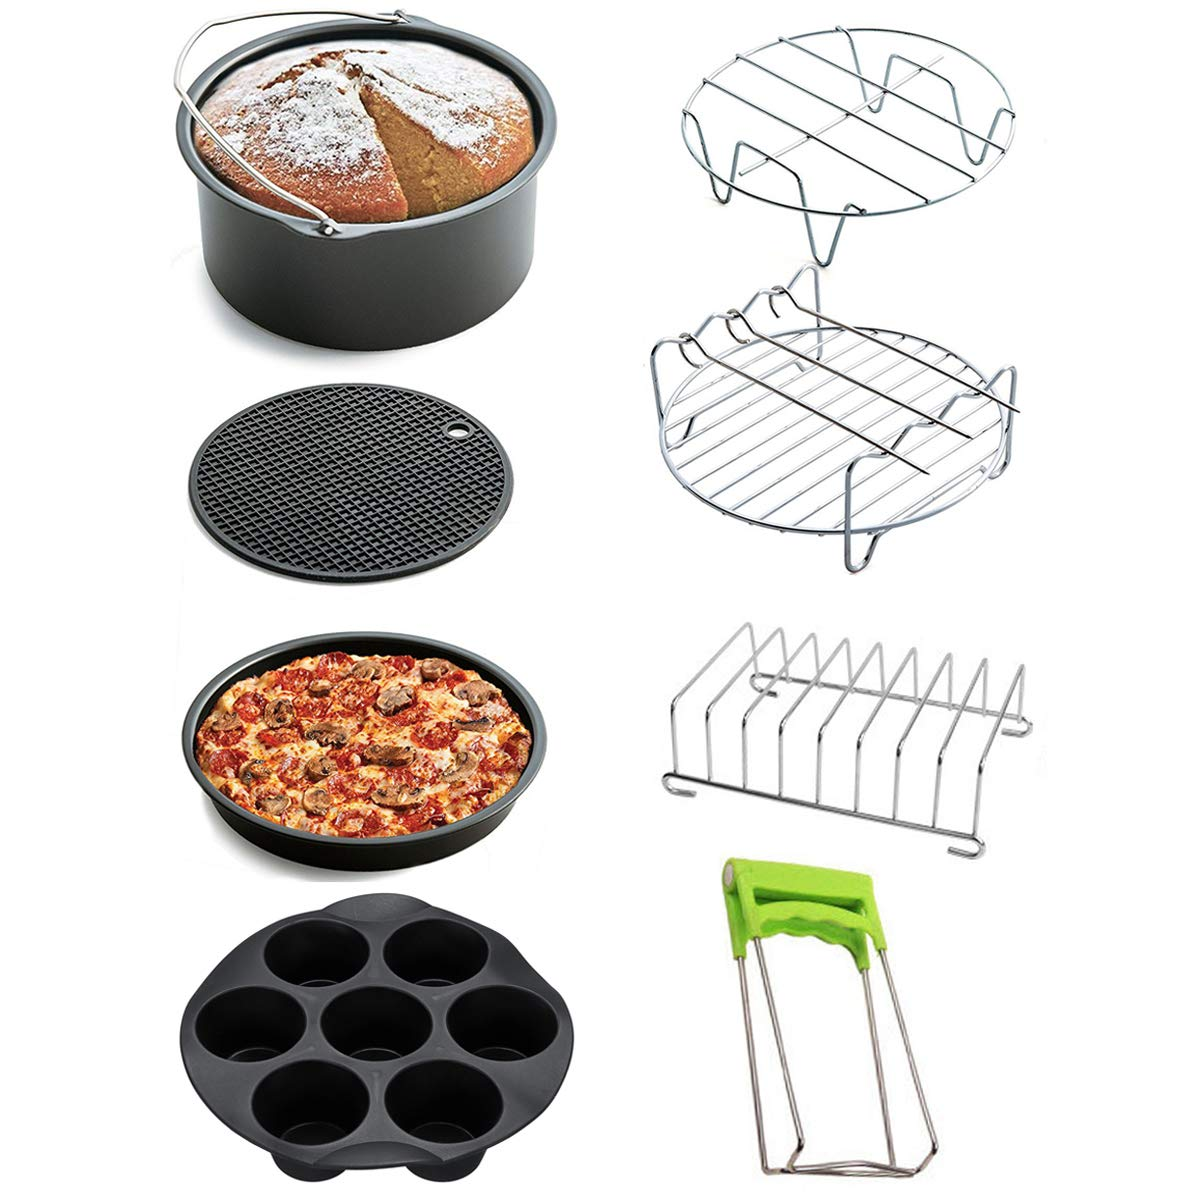 8 inch, 10 pcs Pizza Pan Dish Plate Clip Cake Barrel Bread Shelt Cupcake Pan Moonter 8 inch 5.2QT-5.8QT Air Fryer Accessories with Silicone Mat Steel Skewer Rack Steel Metal Holder